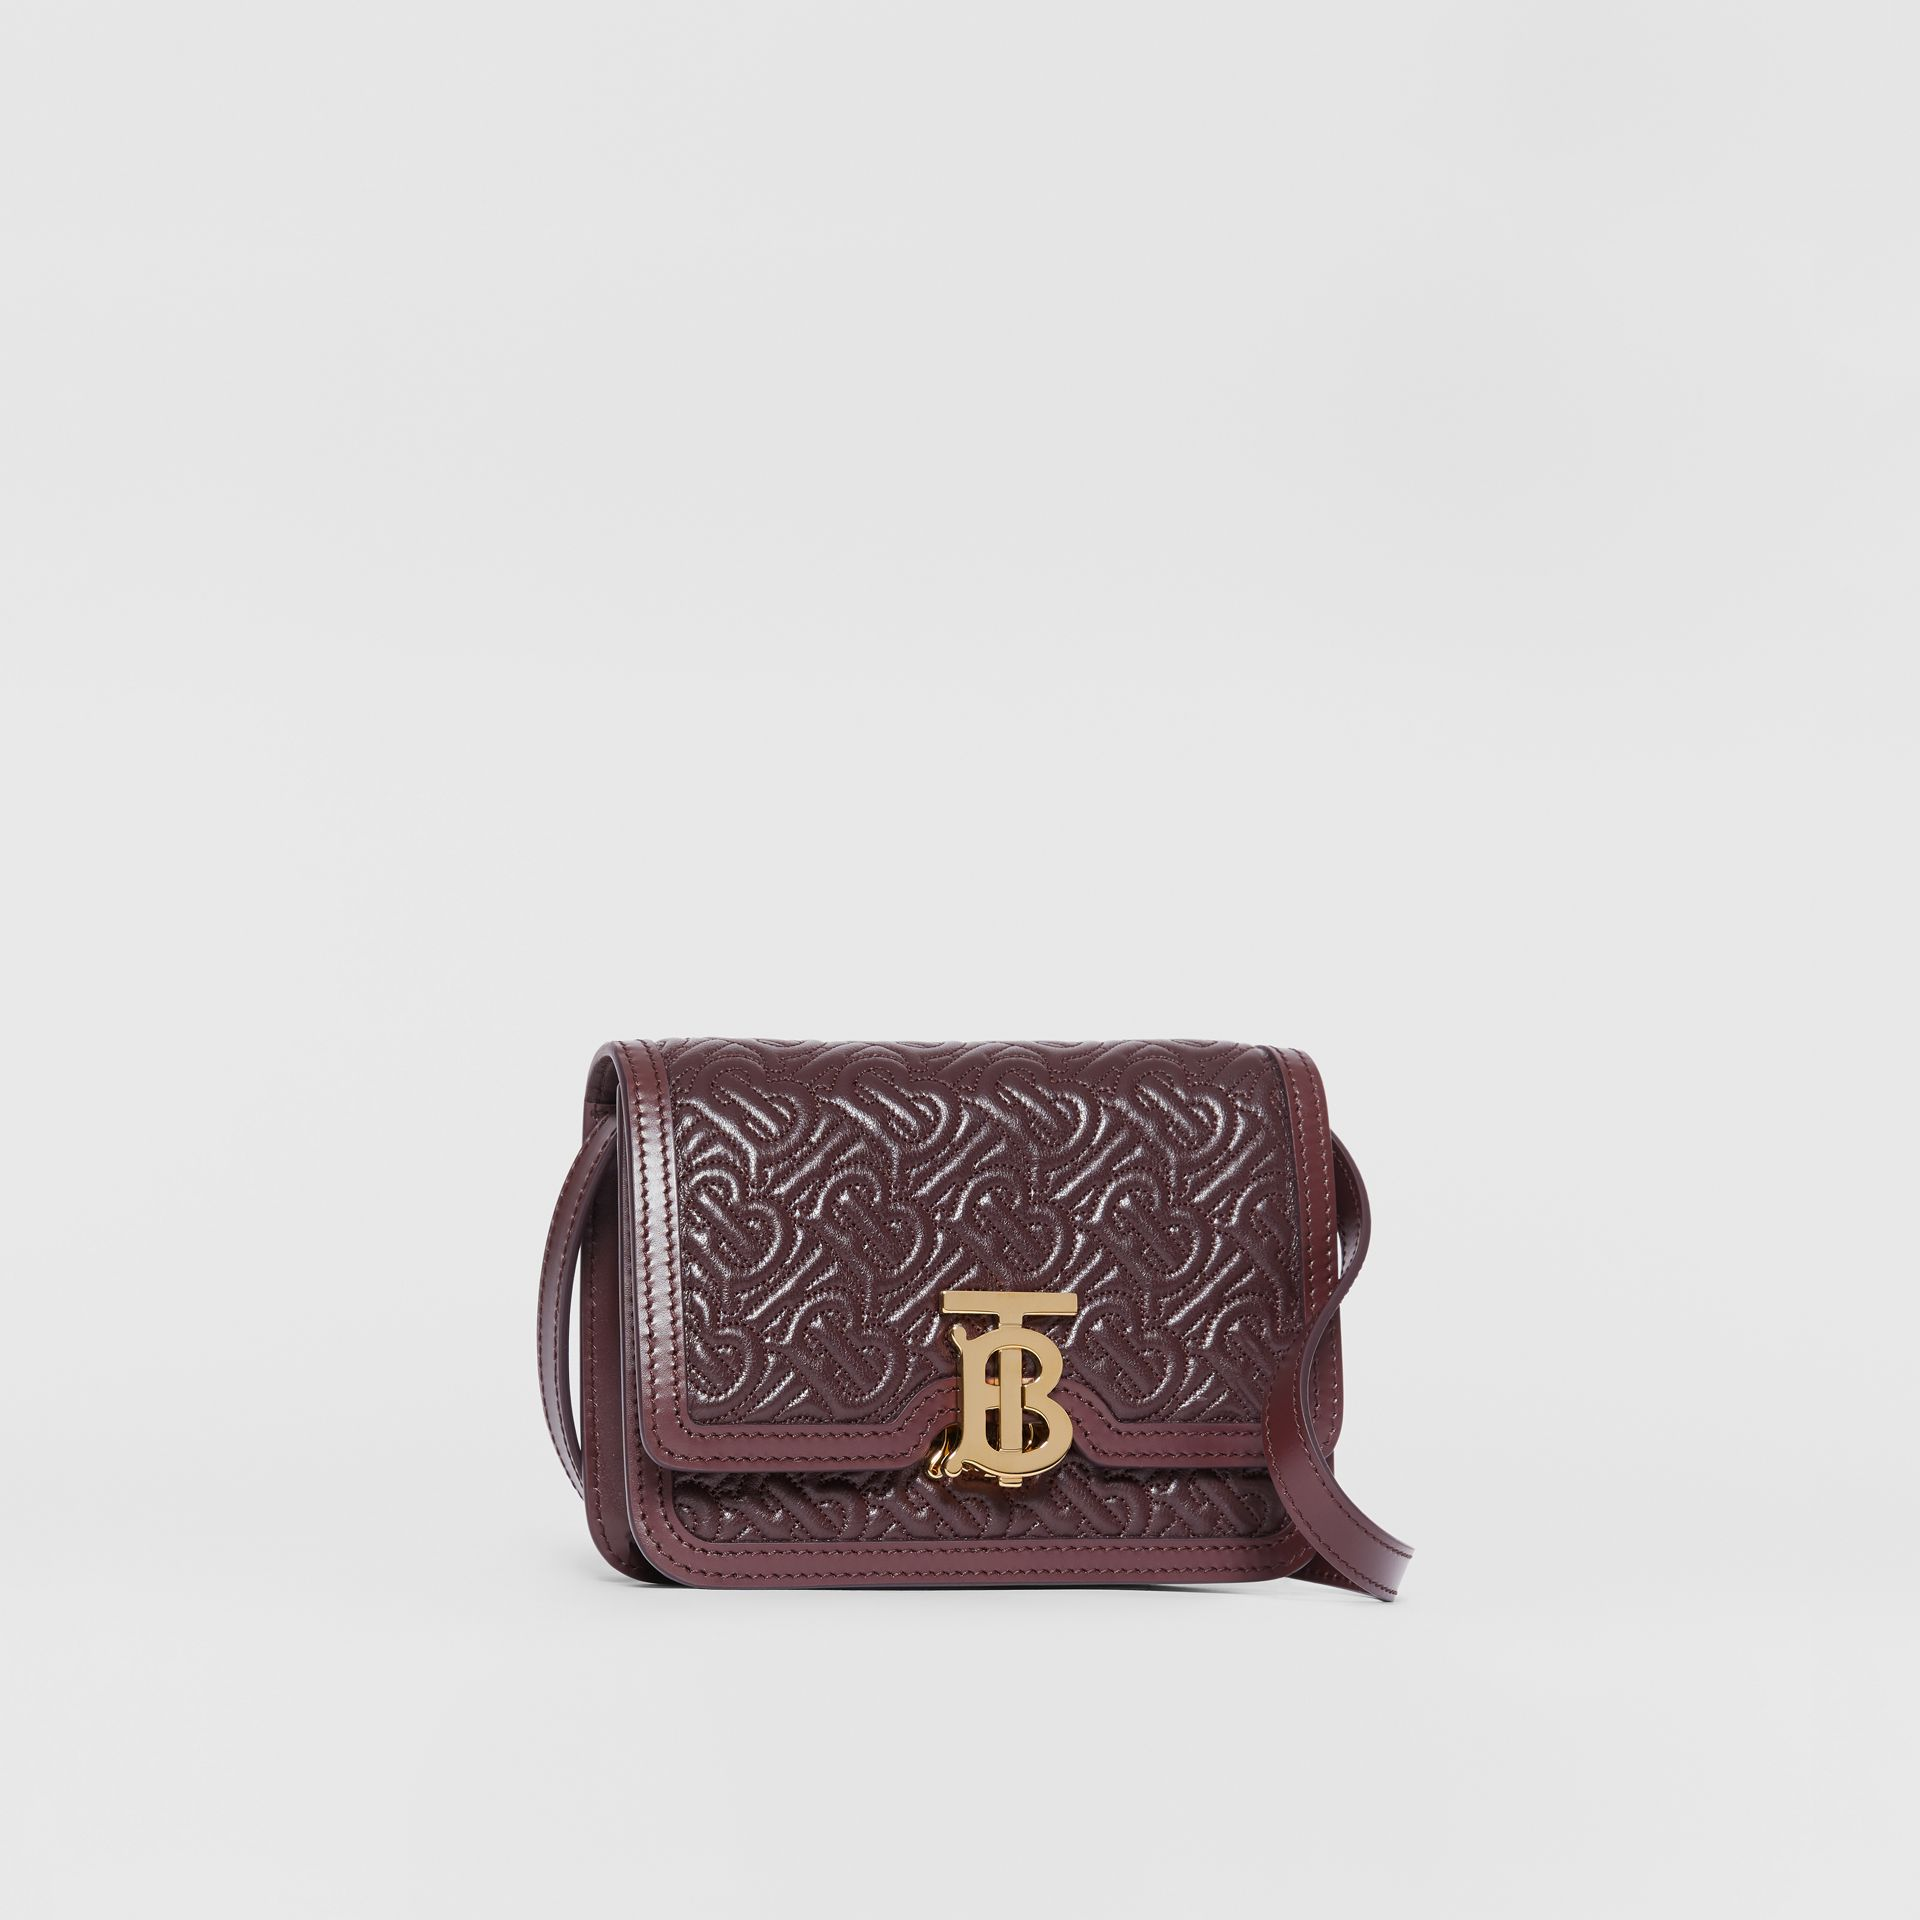 Mini Quilted Monogram Lambskin TB Bag in Dark Burgundy - Women | Burberry - gallery image 6